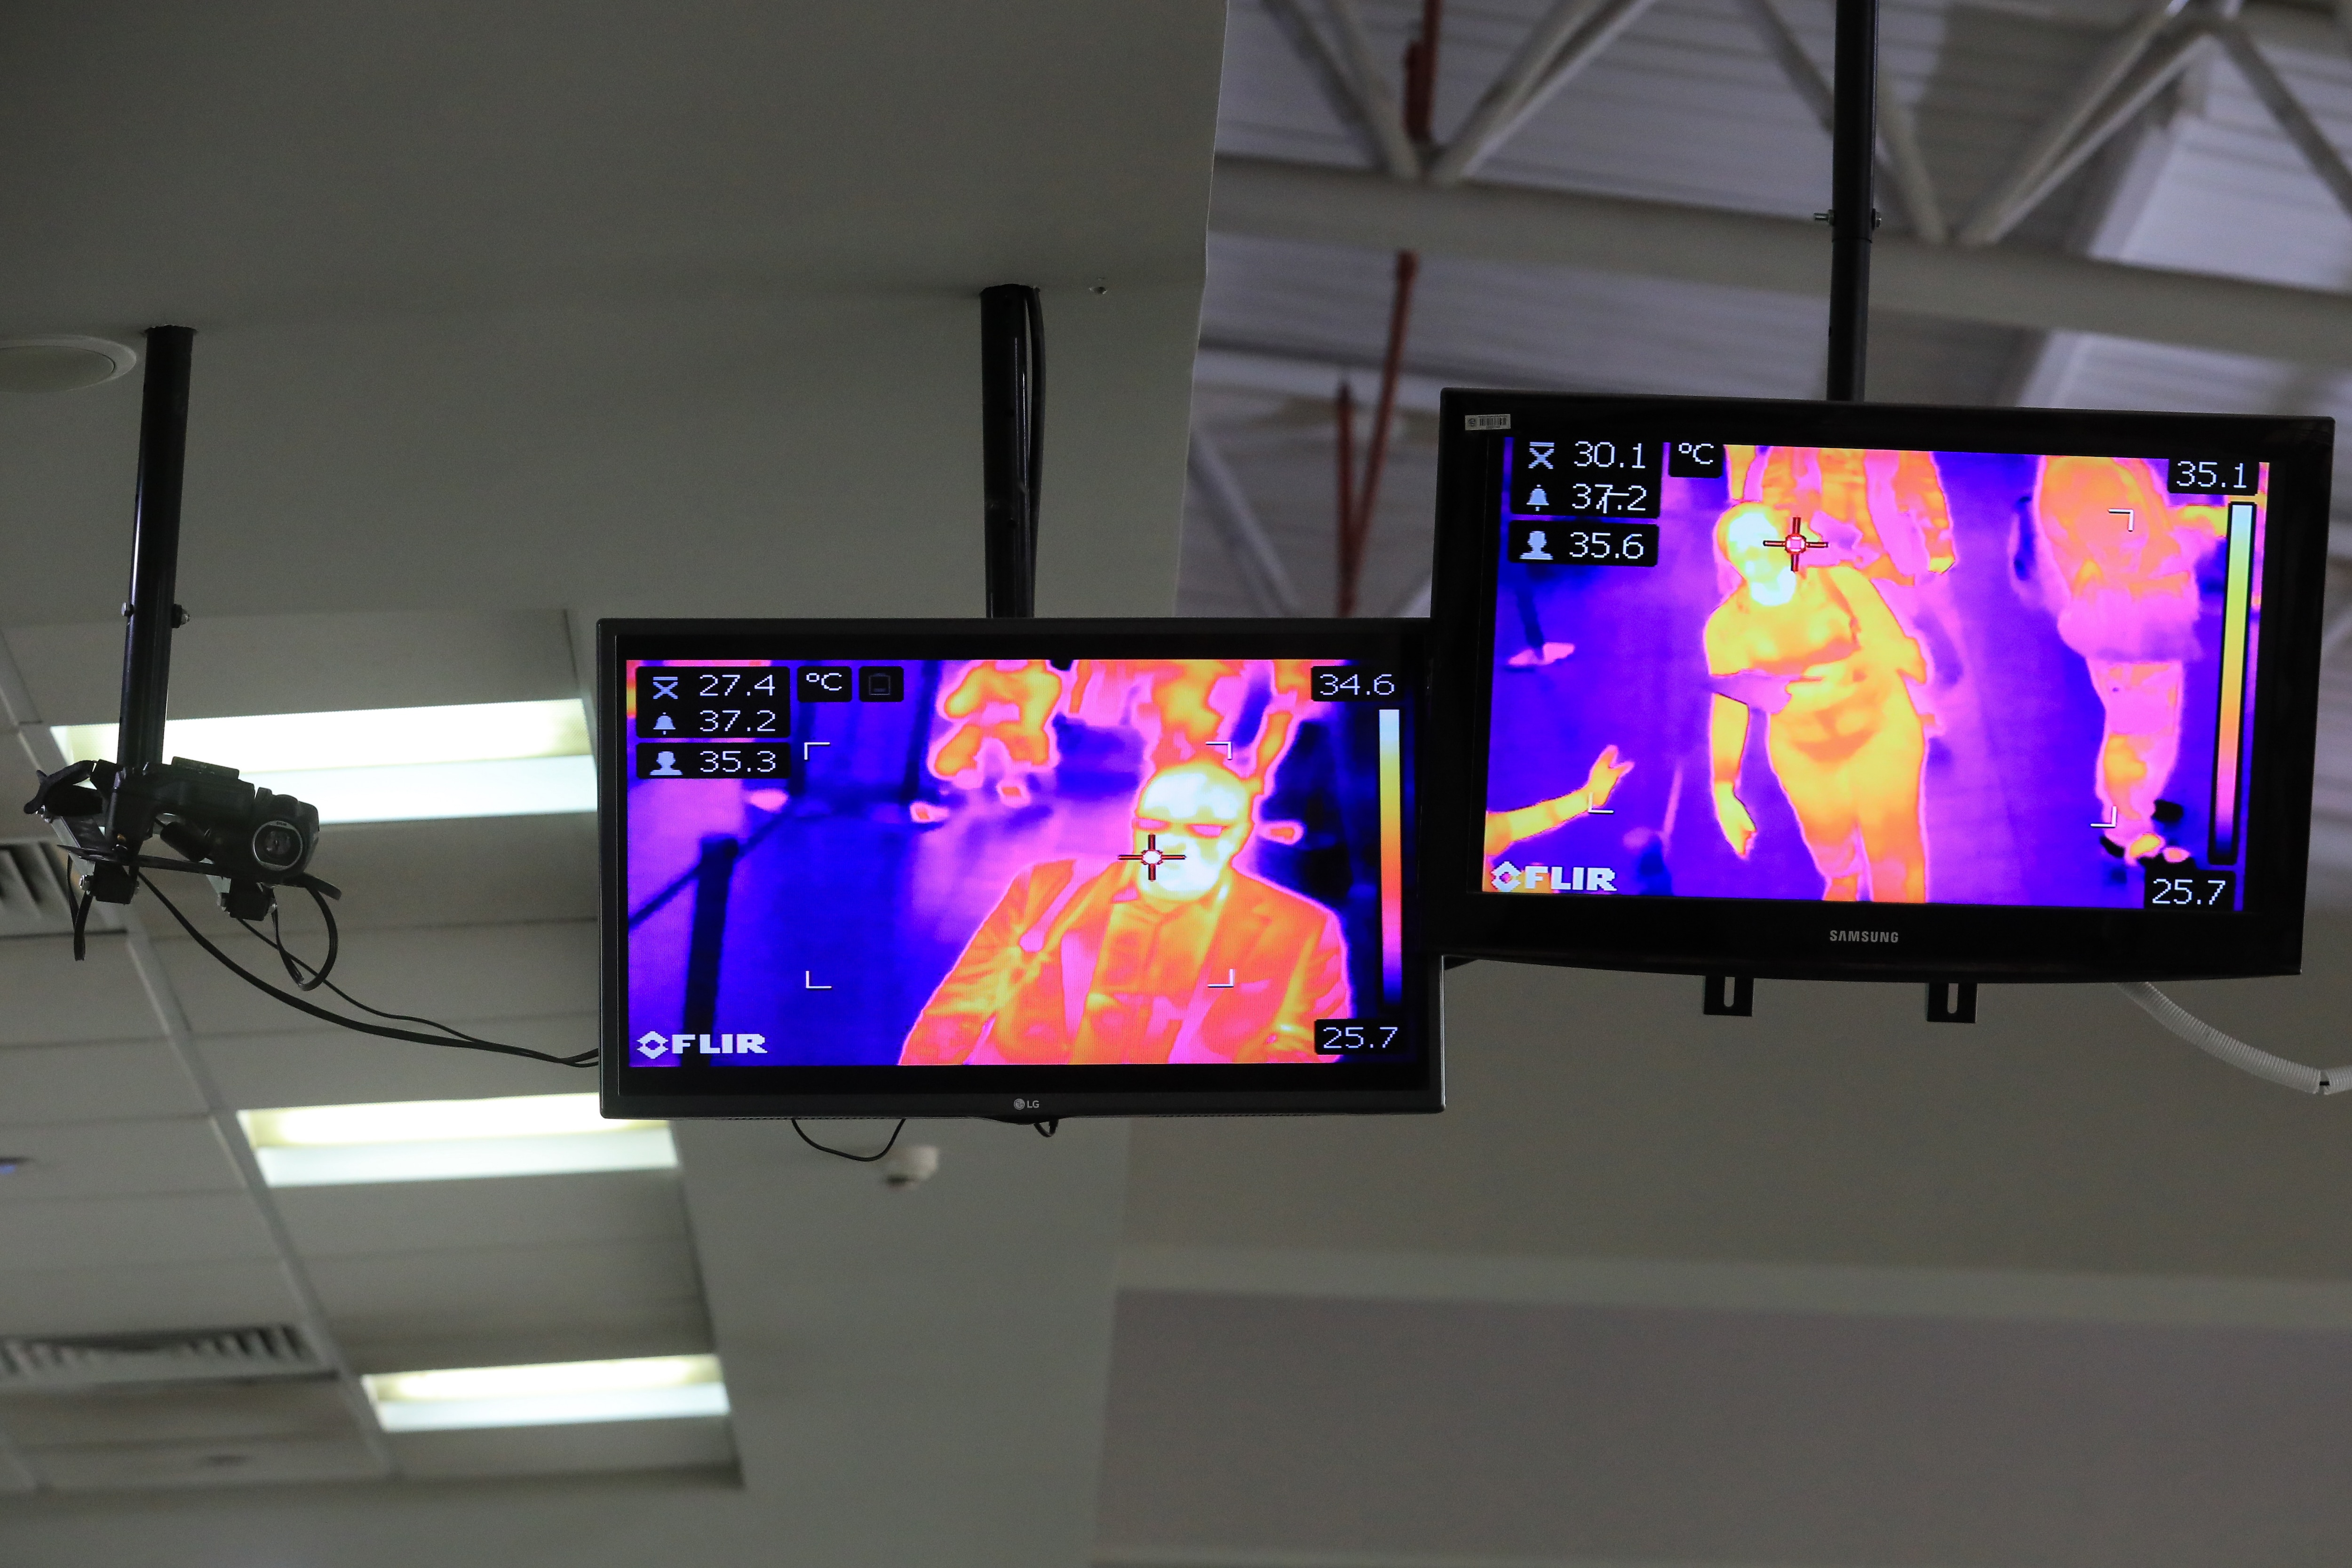 Travellers are being screened for temperatures using thermo cameras.